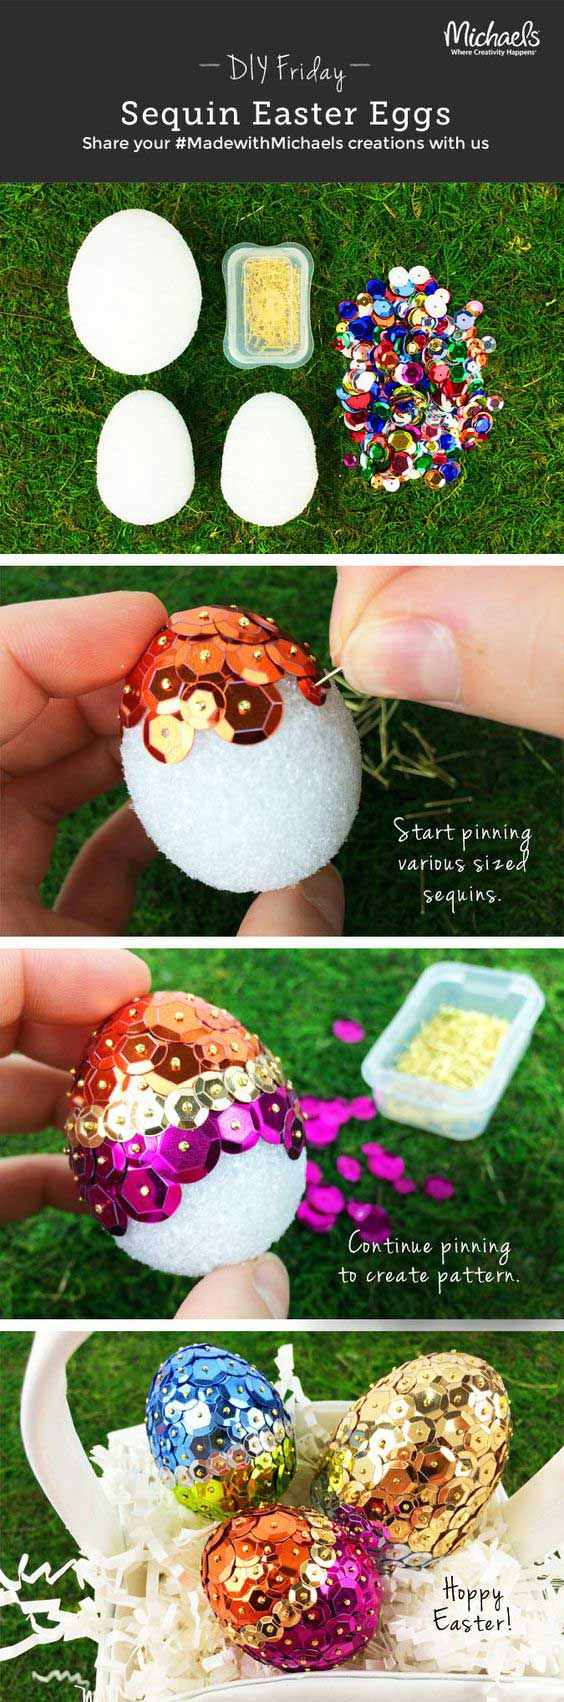 Add glitter to the eggs.